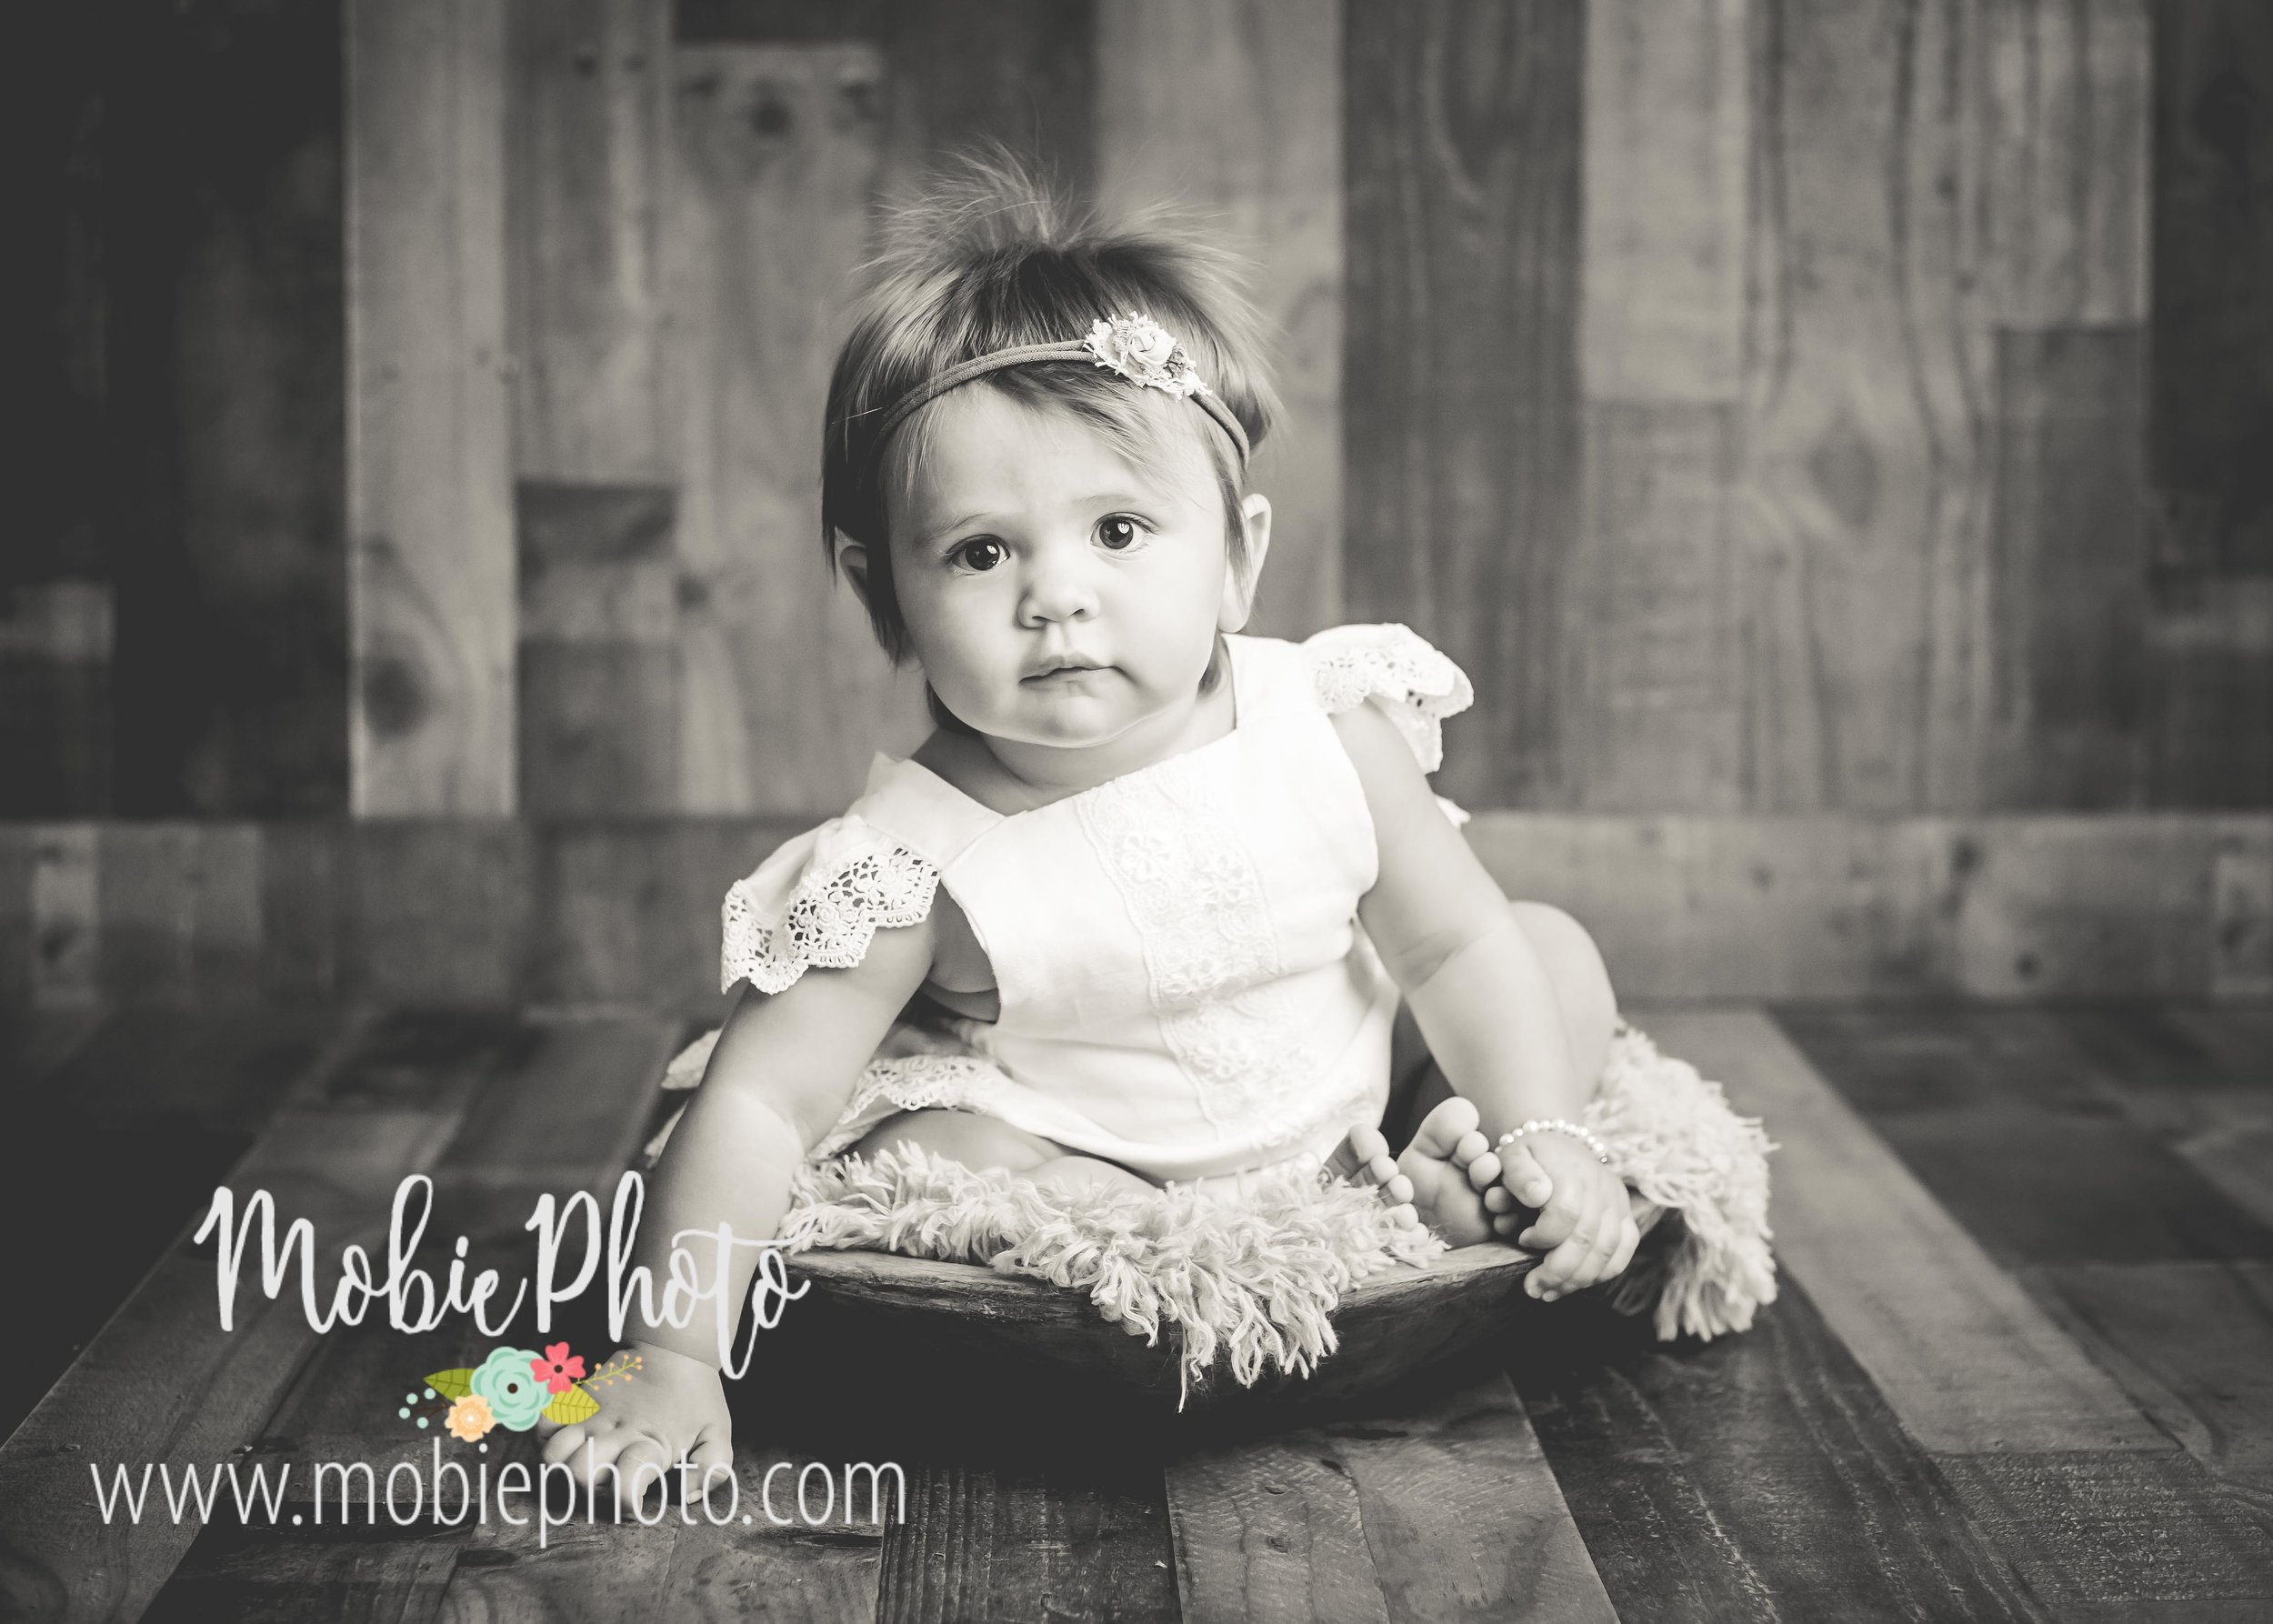 Mobie Photo - Utah Newborn Photographer - First Birthday Cake Smash Pictures